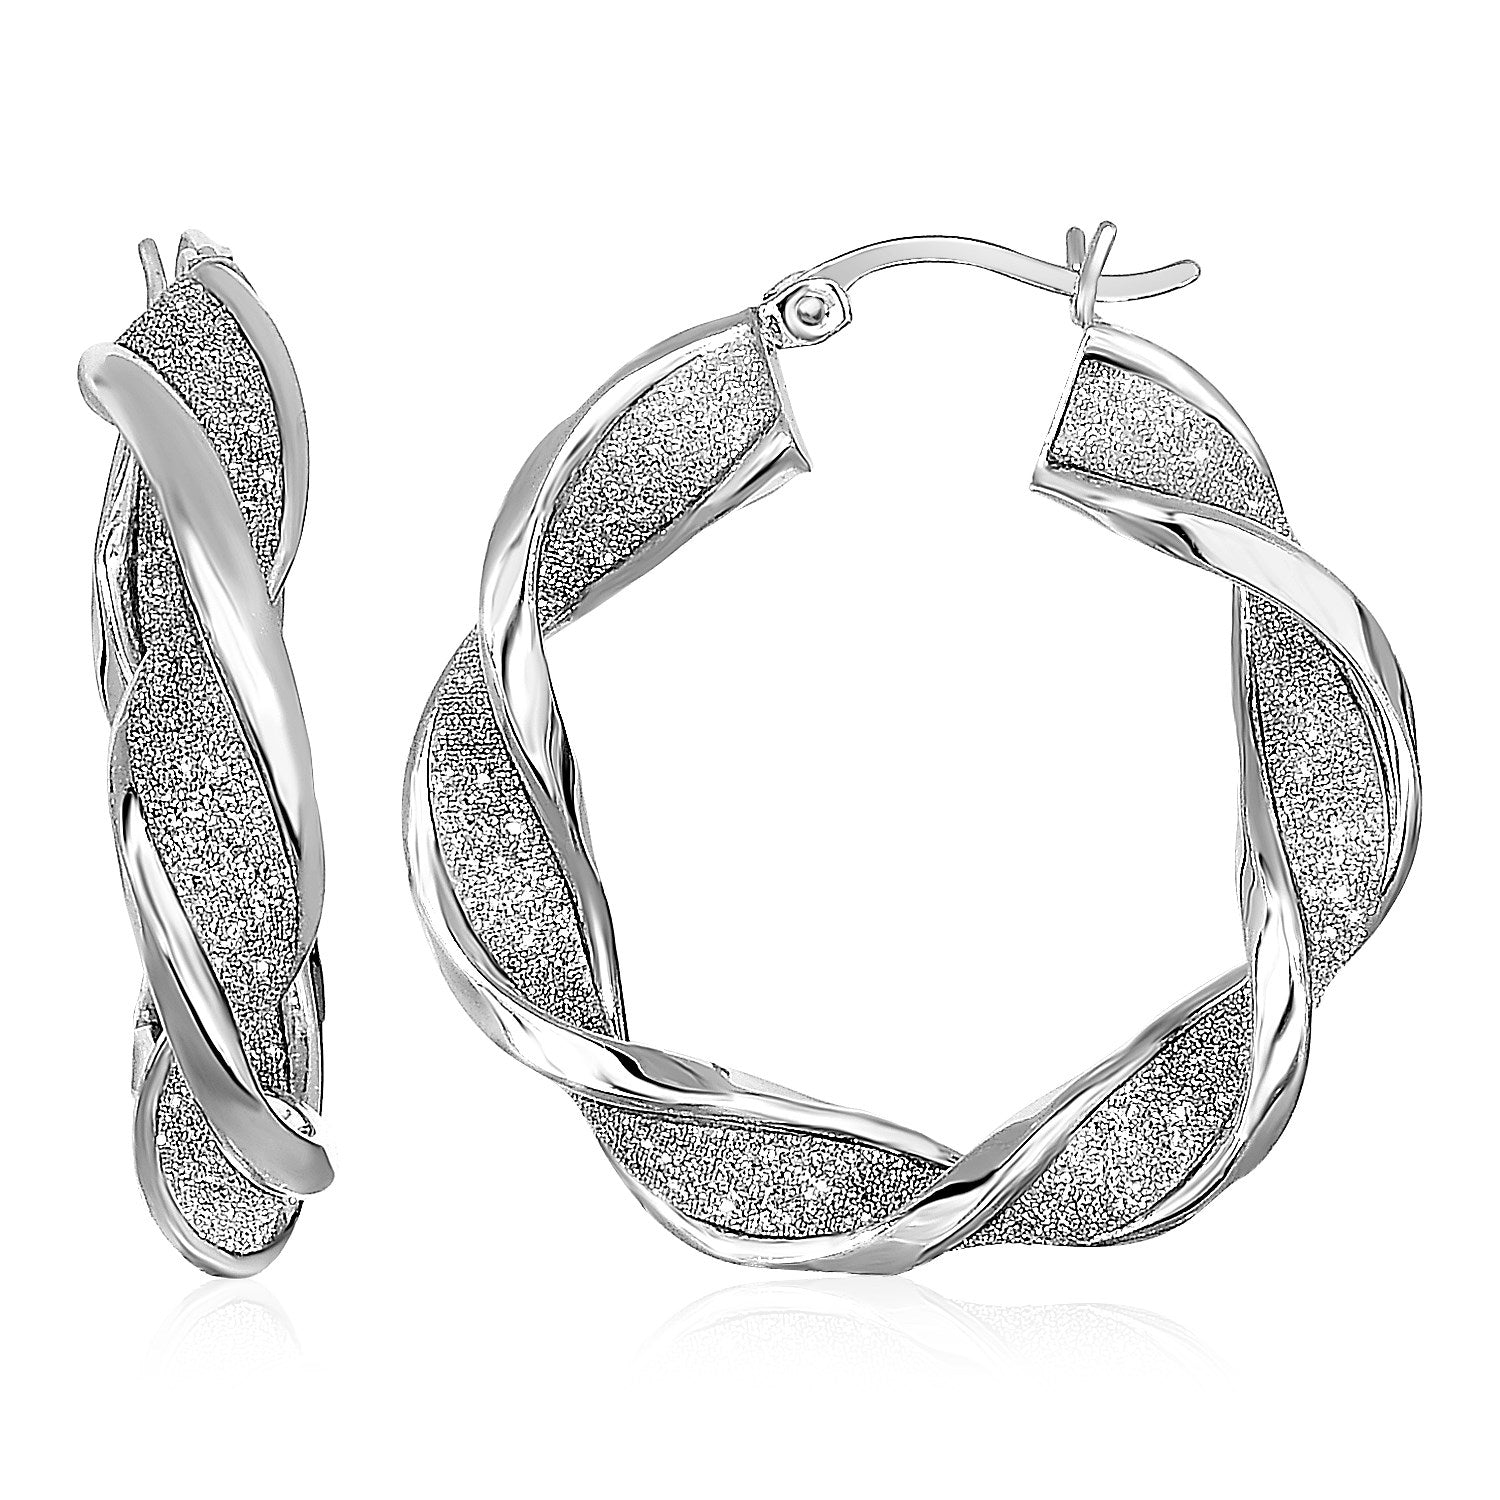 Original New York Style  Twisted Glitter Textured Hoop Earrings in Sterling Silver